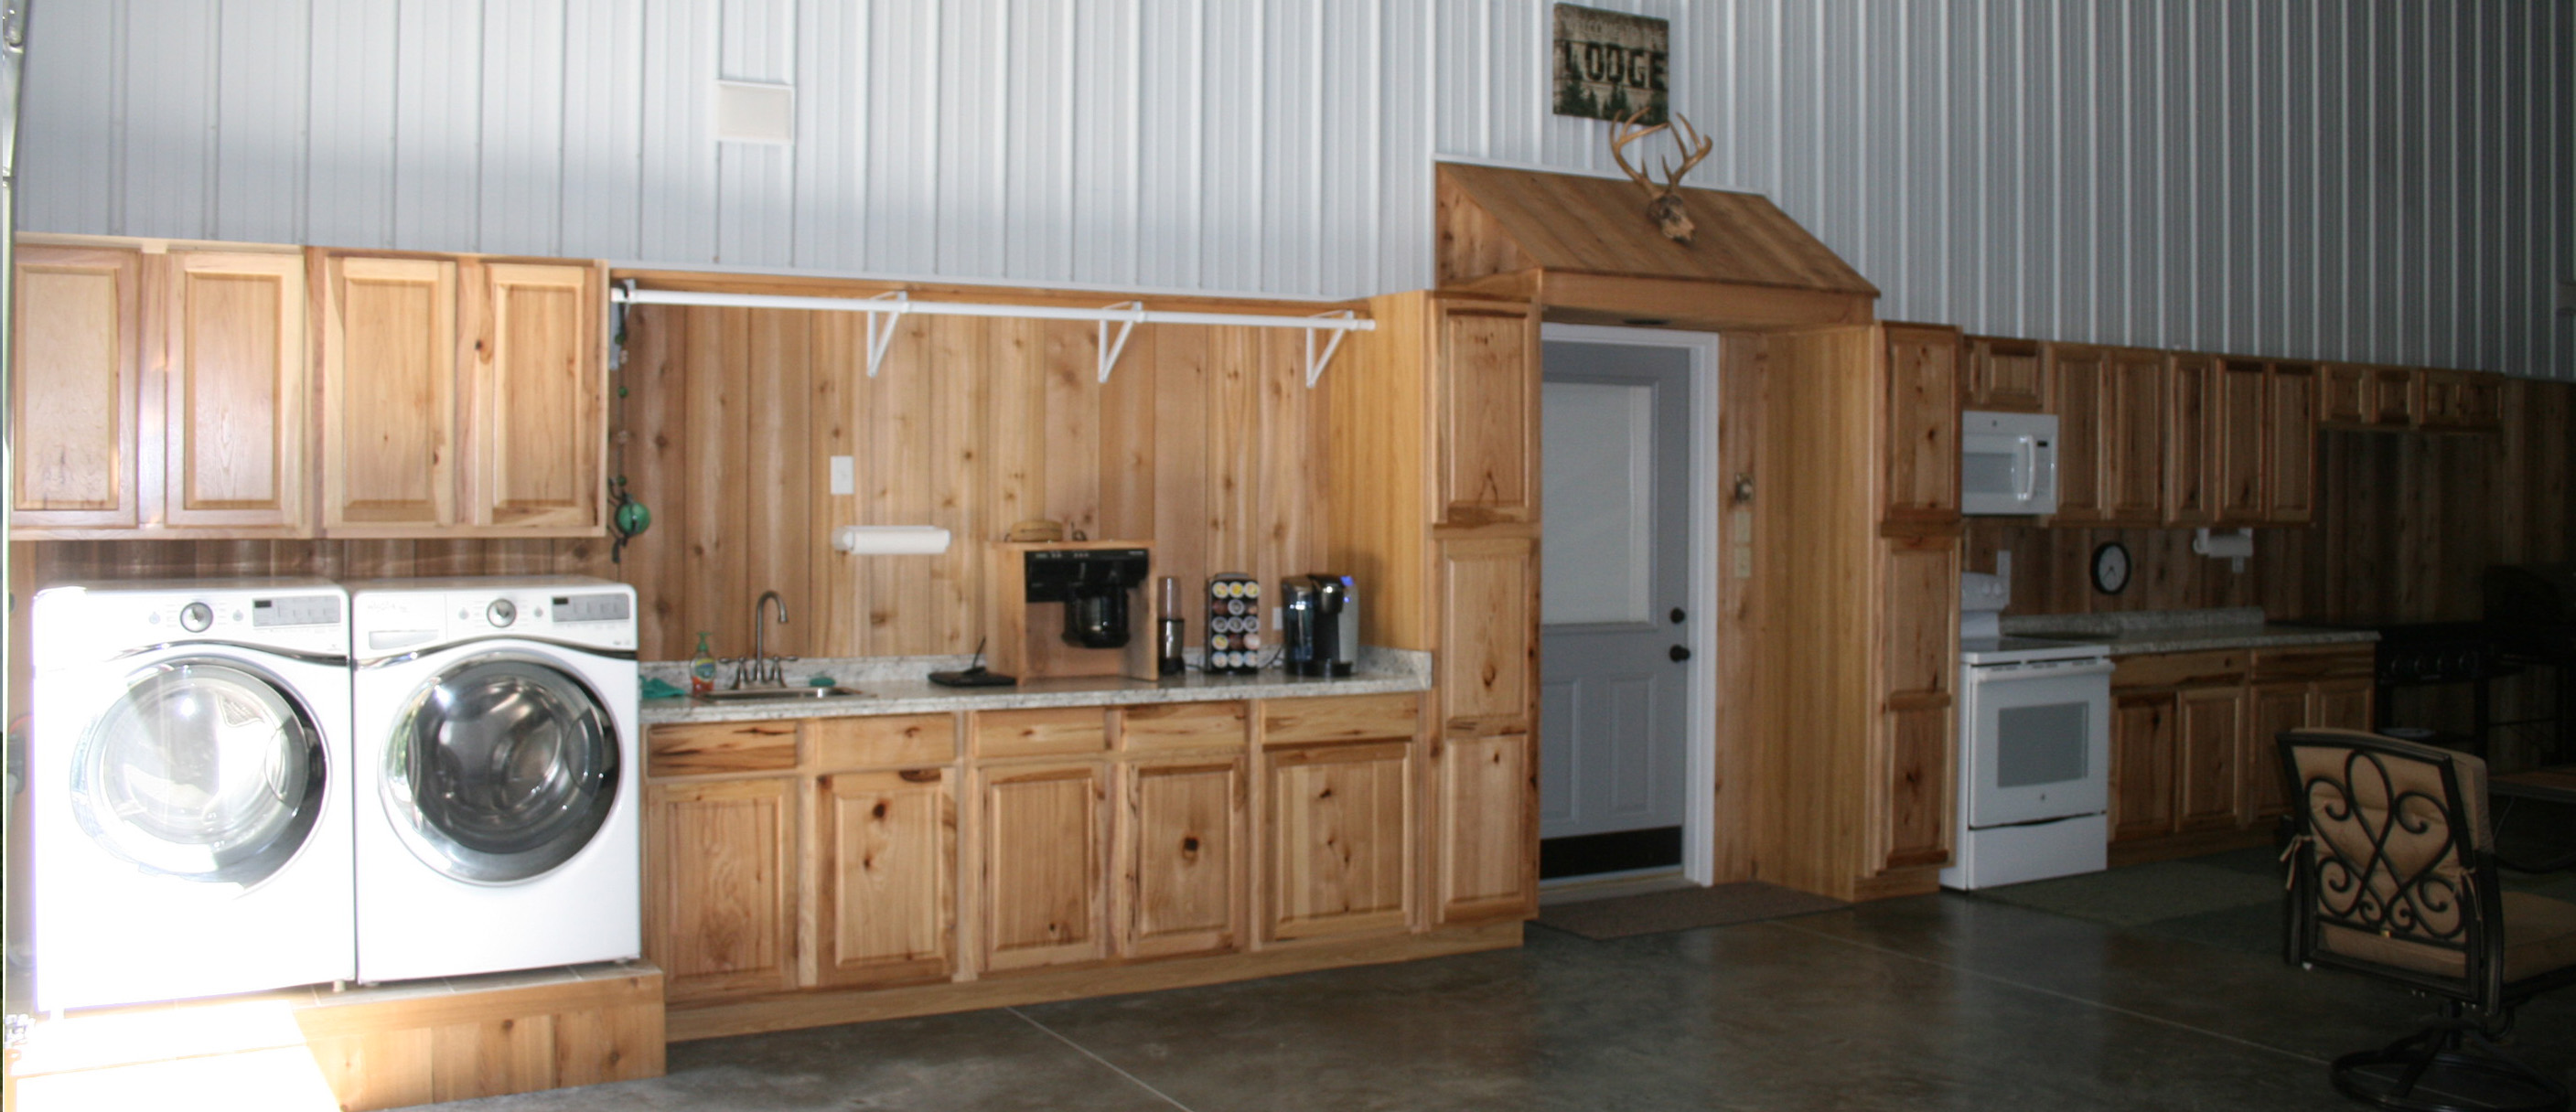 Special purpose buildings in clermont county and southern ohio for Rv barn with living quarters